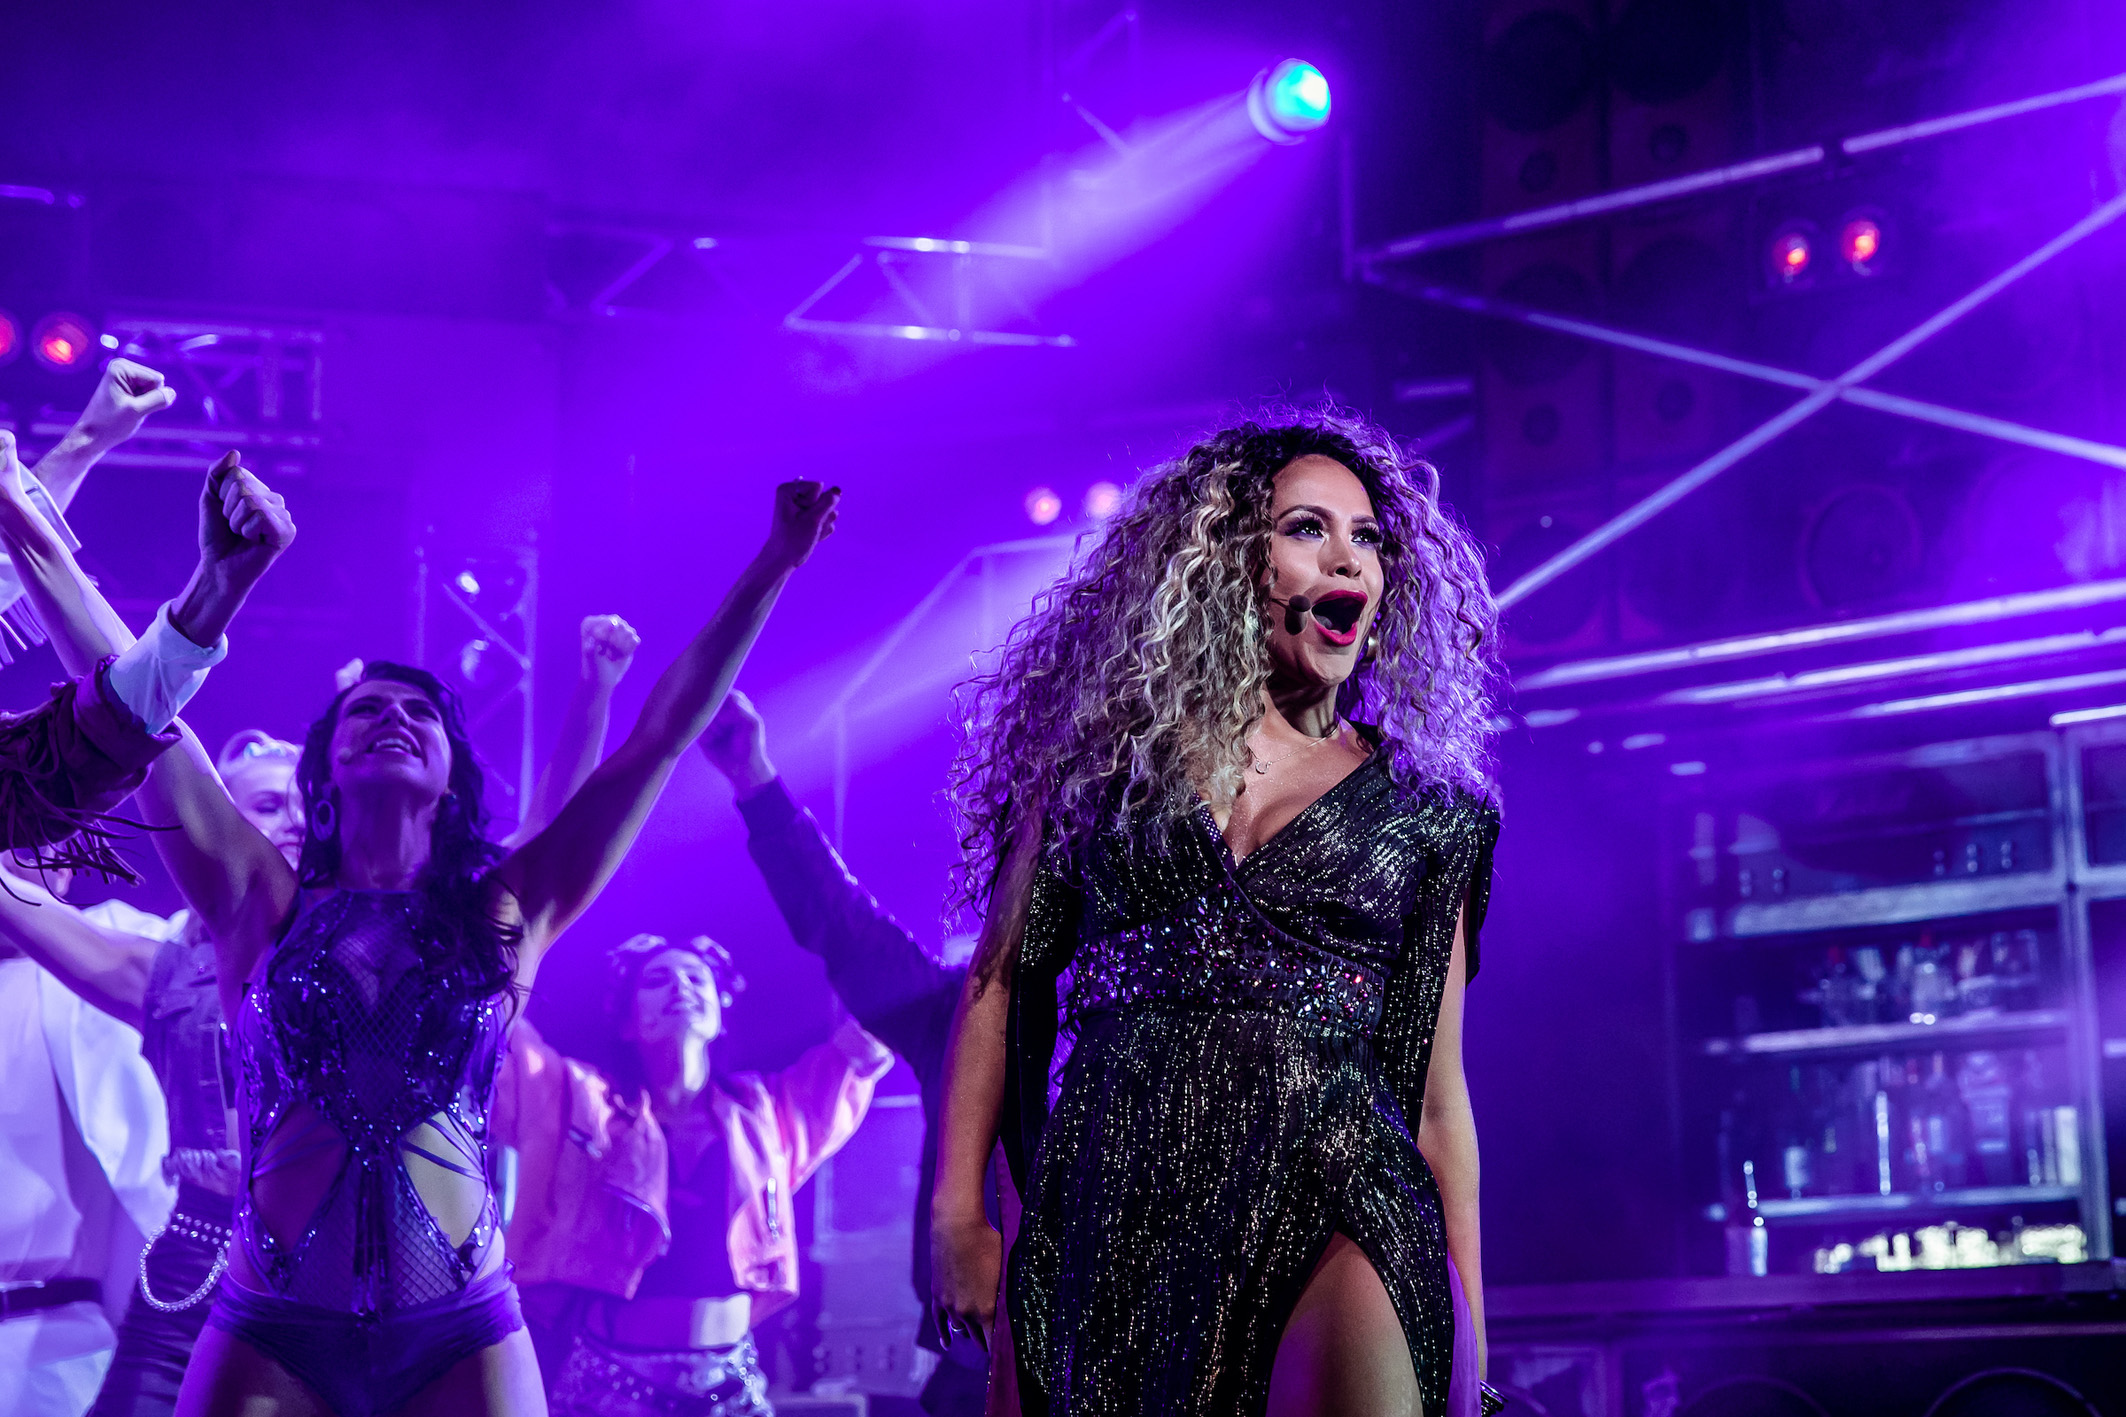 Zoe Birkett as 'Justice' in ROCK OF AGES